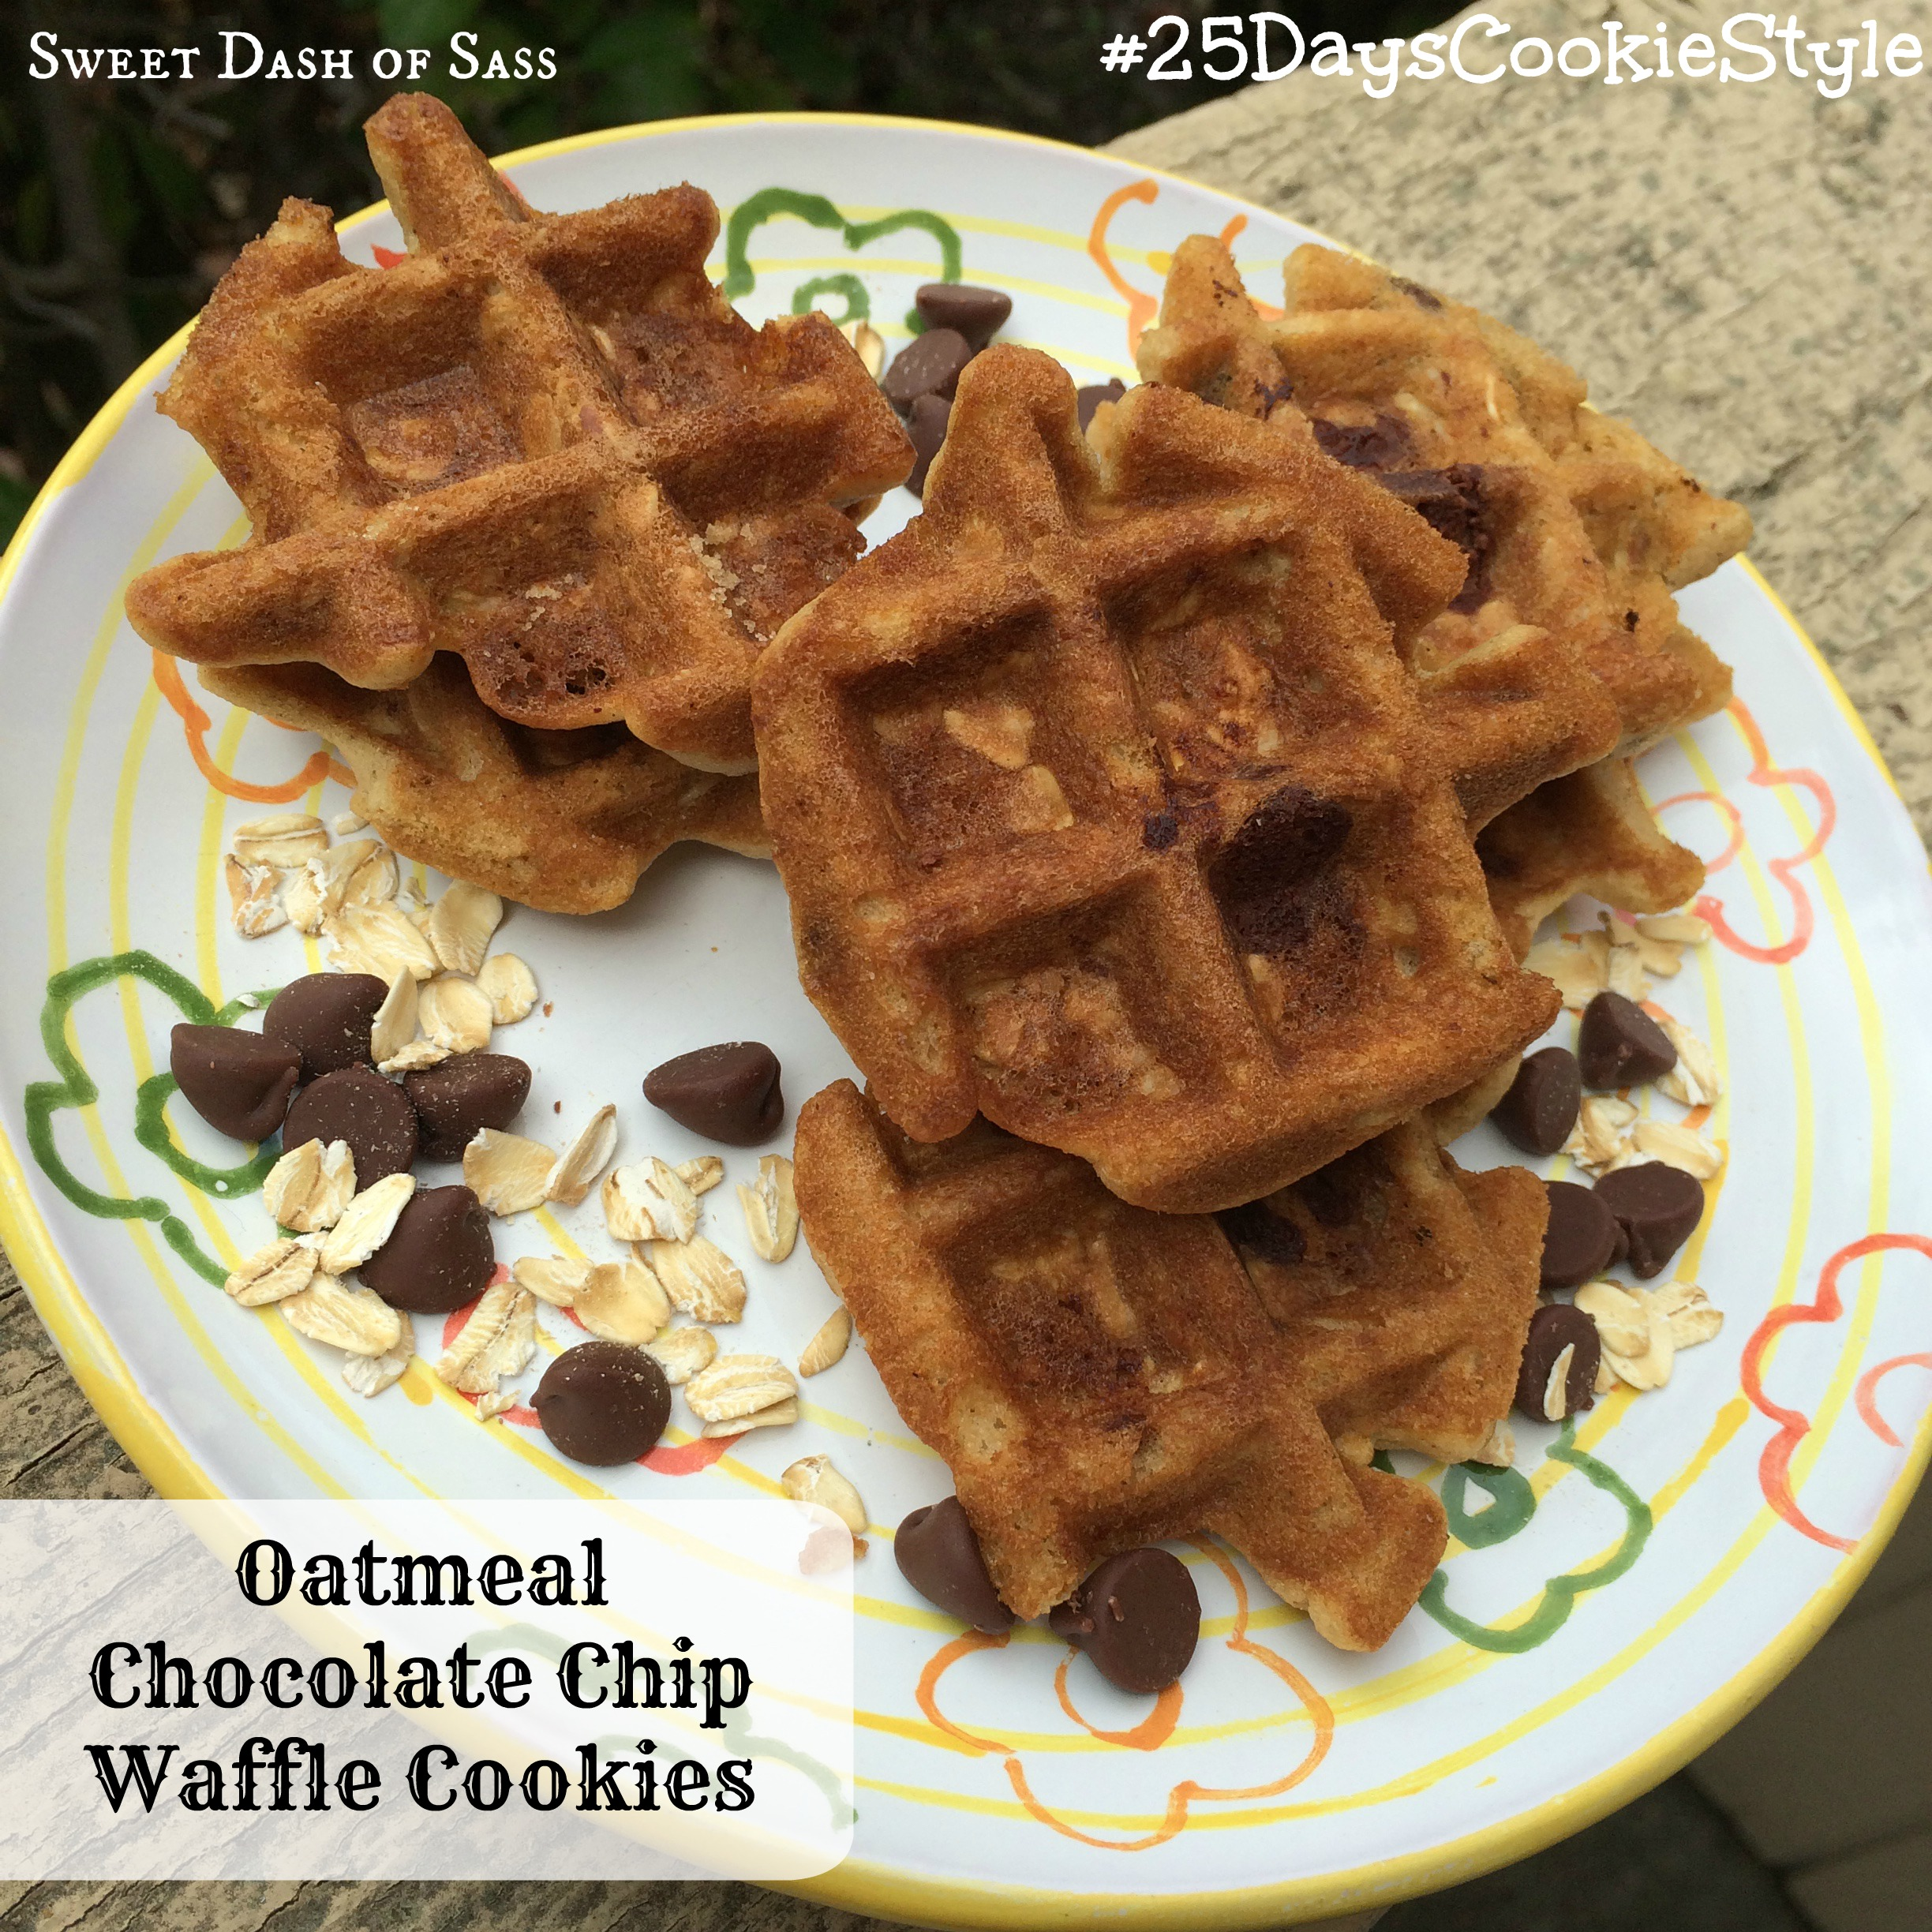 Oatmeal-Chocolate Chip Waffle Cookies Recipe — Dishmaps